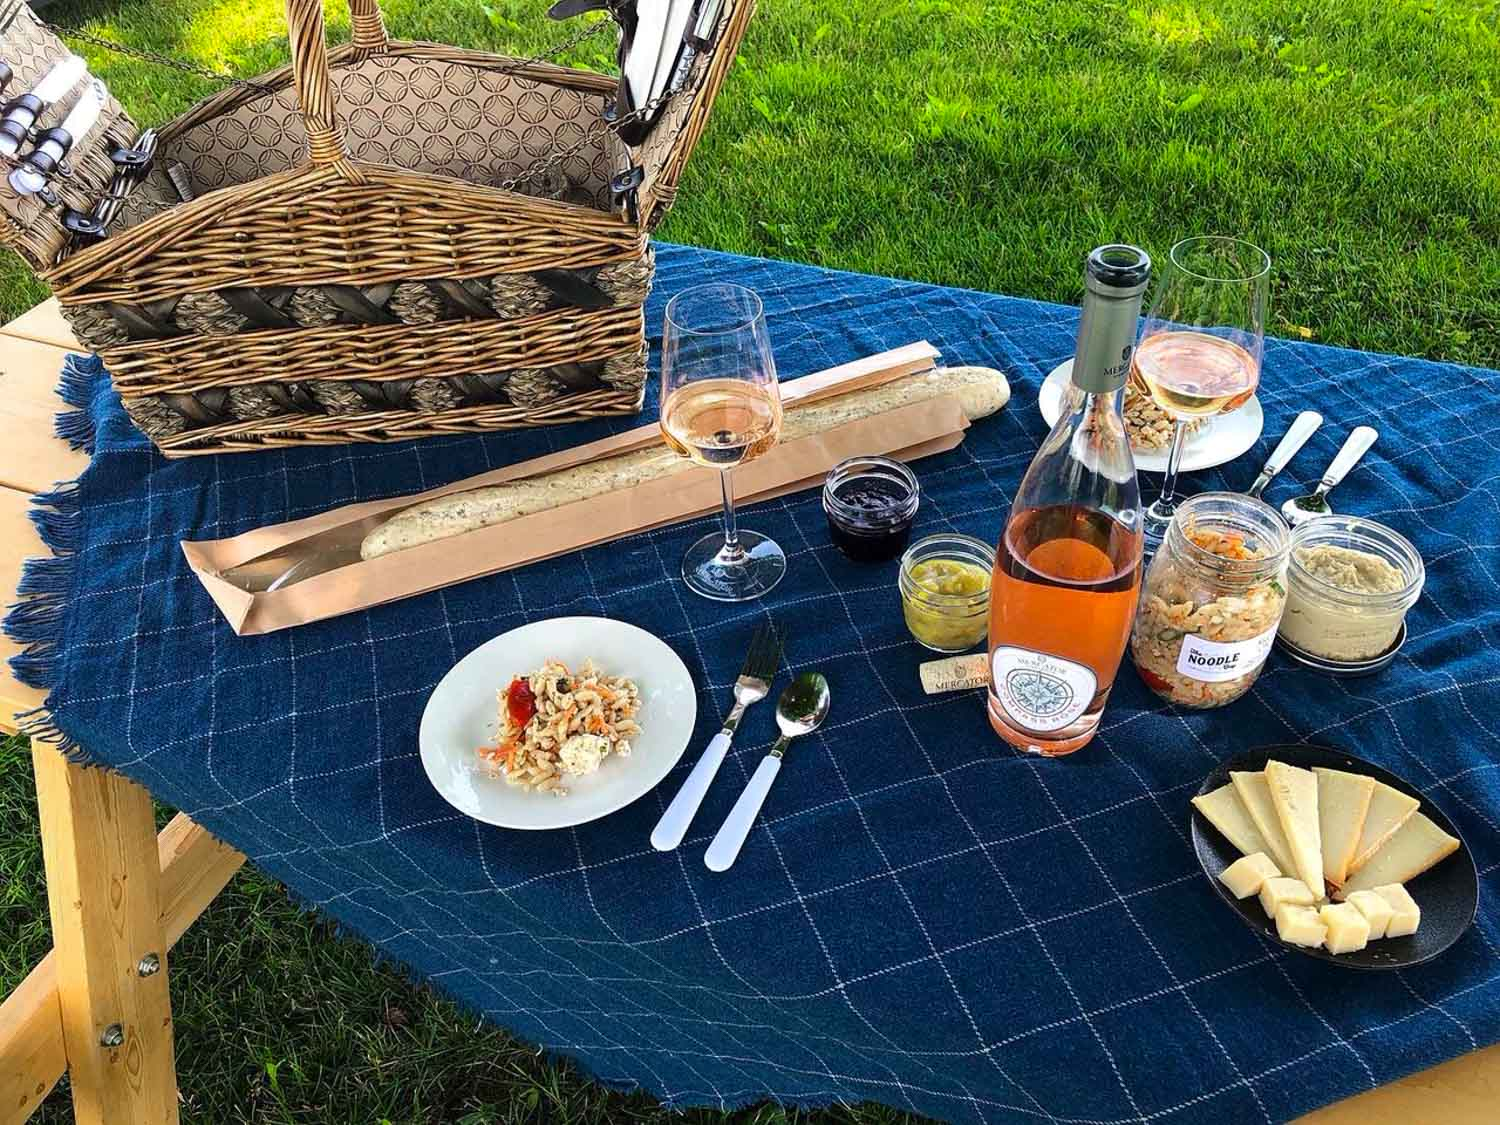 Picnic table with Mercator Vineyards wine and cheese